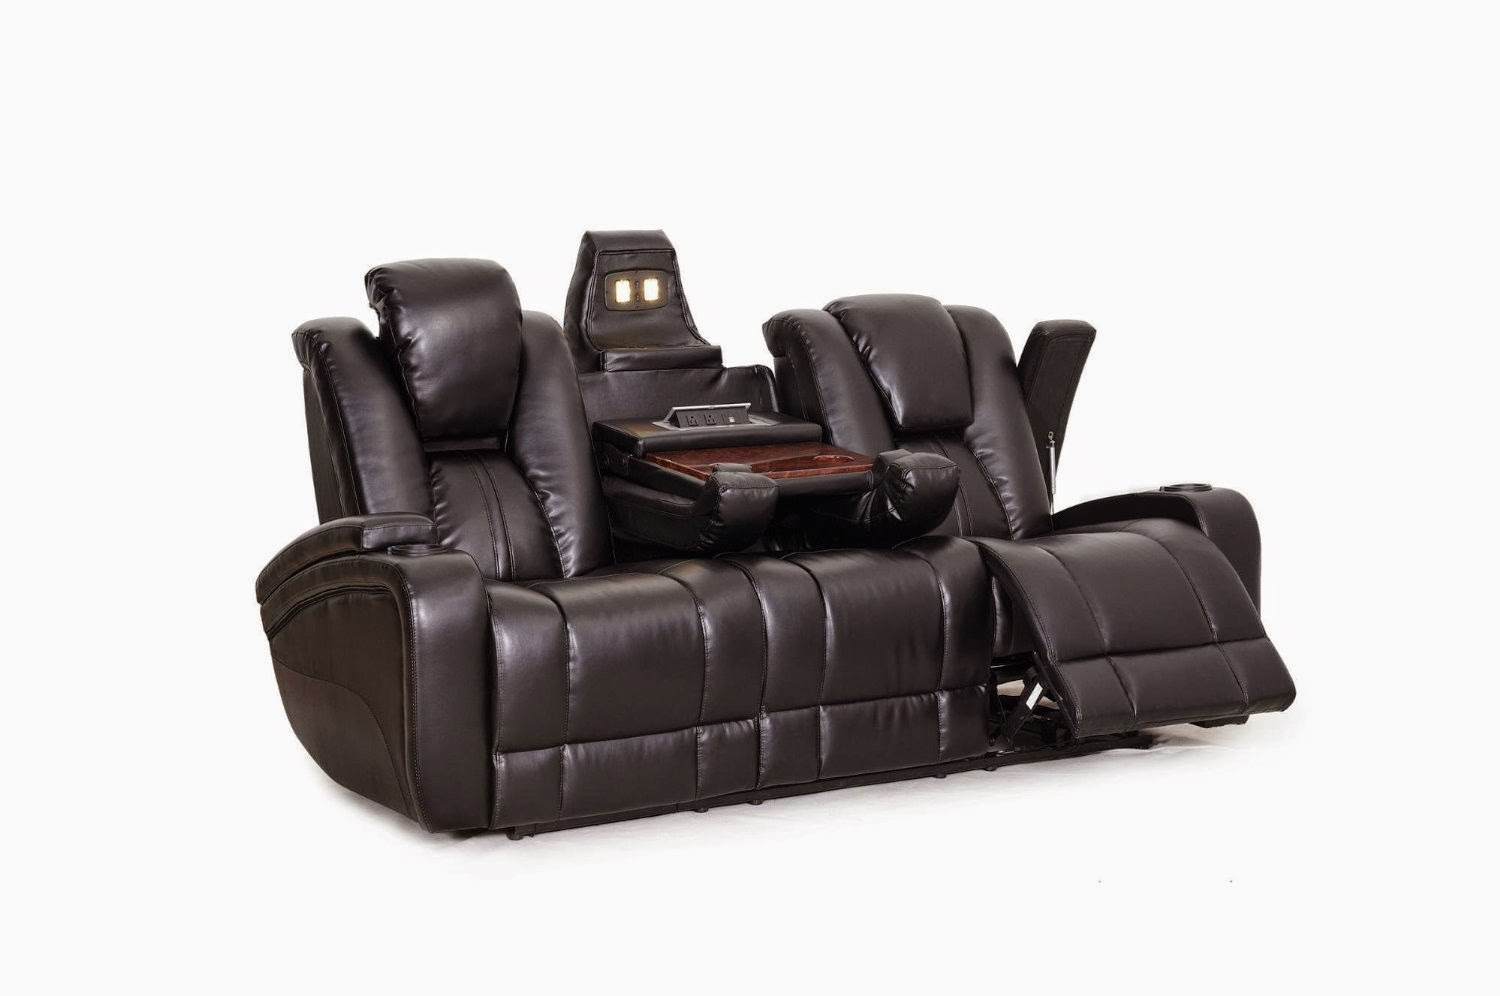 2 seater power recliner sofa wooden designs pictures the best reclining reviews: leather ...